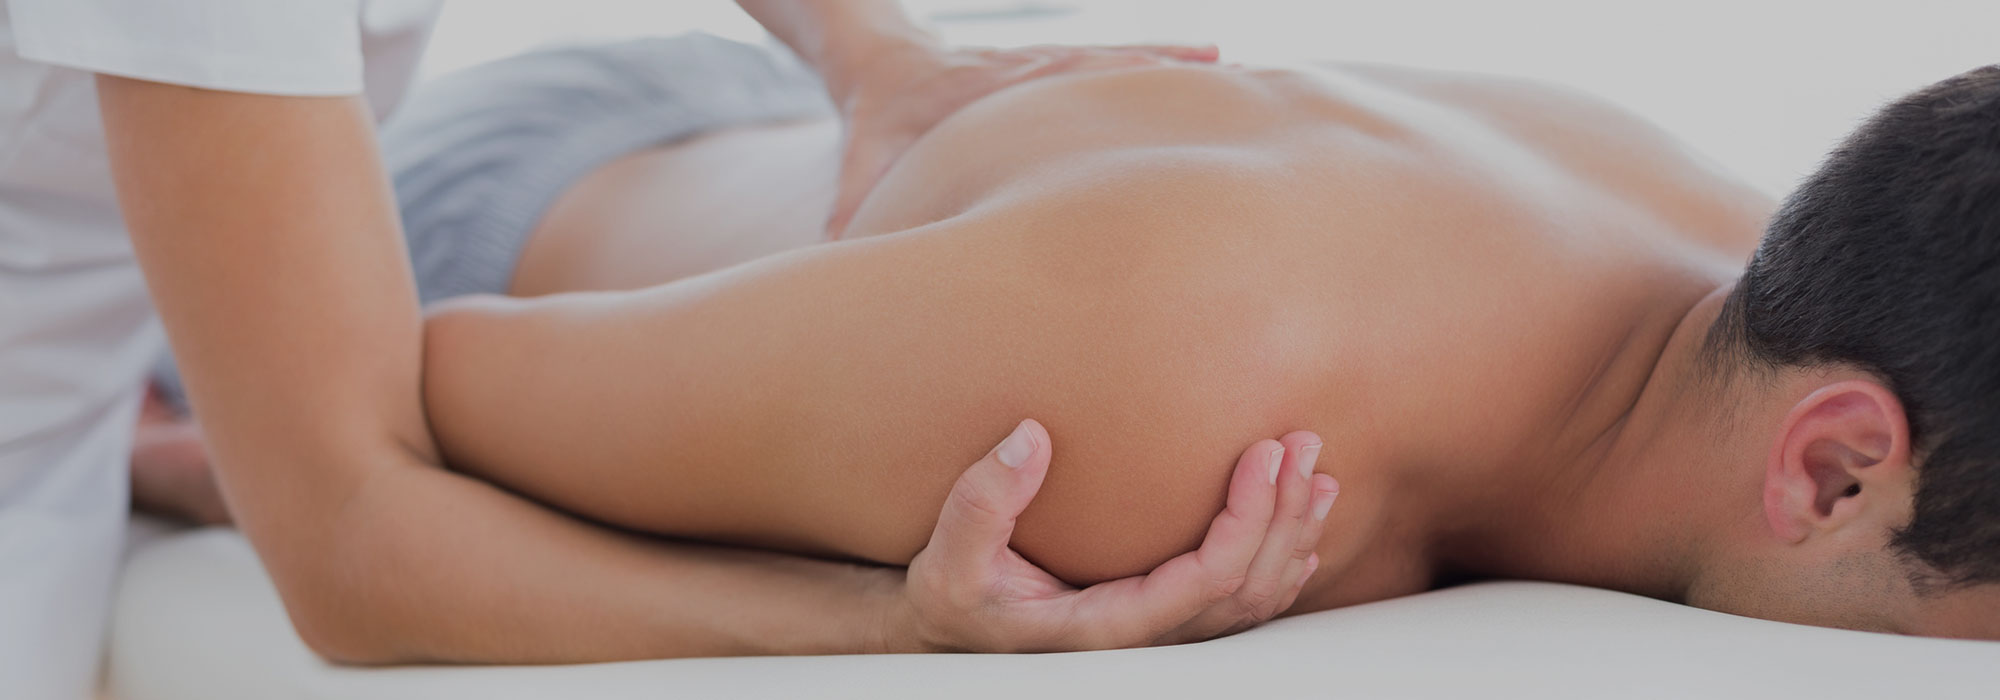 Back Massage at Somatherapy Institute School of Massage